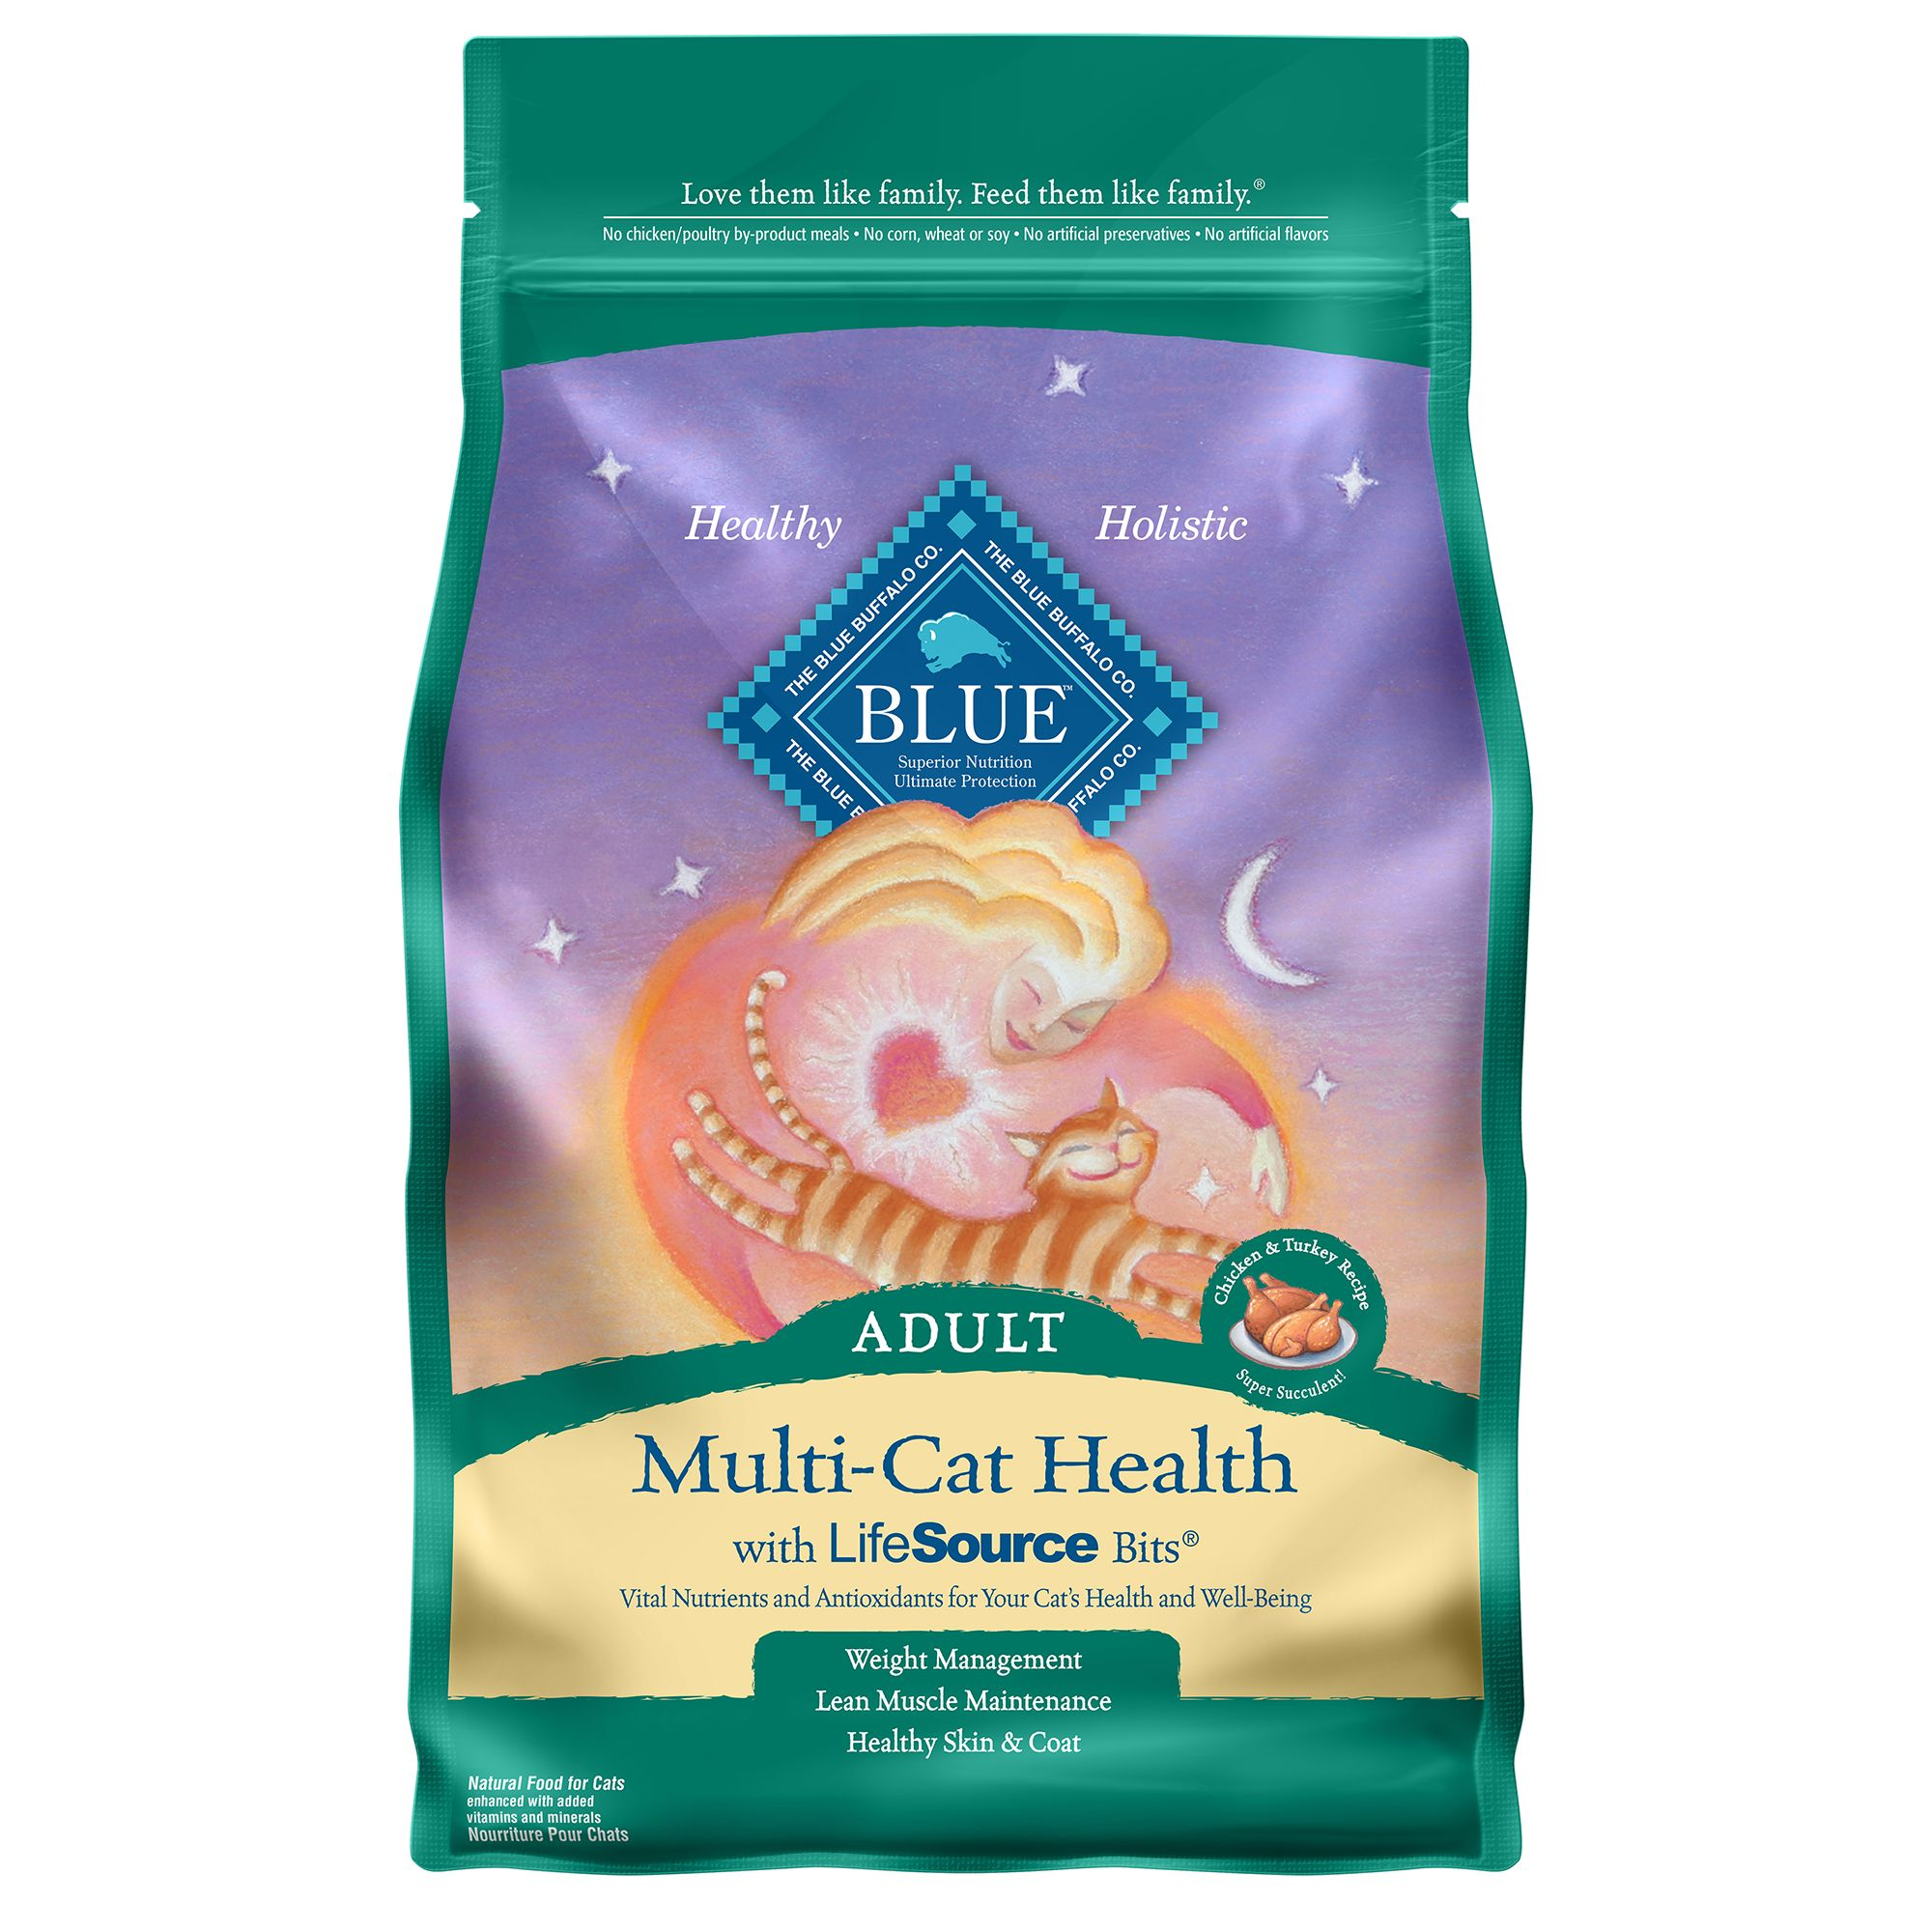 Blue, Multi-Cat Health Chicken and Turkey Adult Cat Food siz